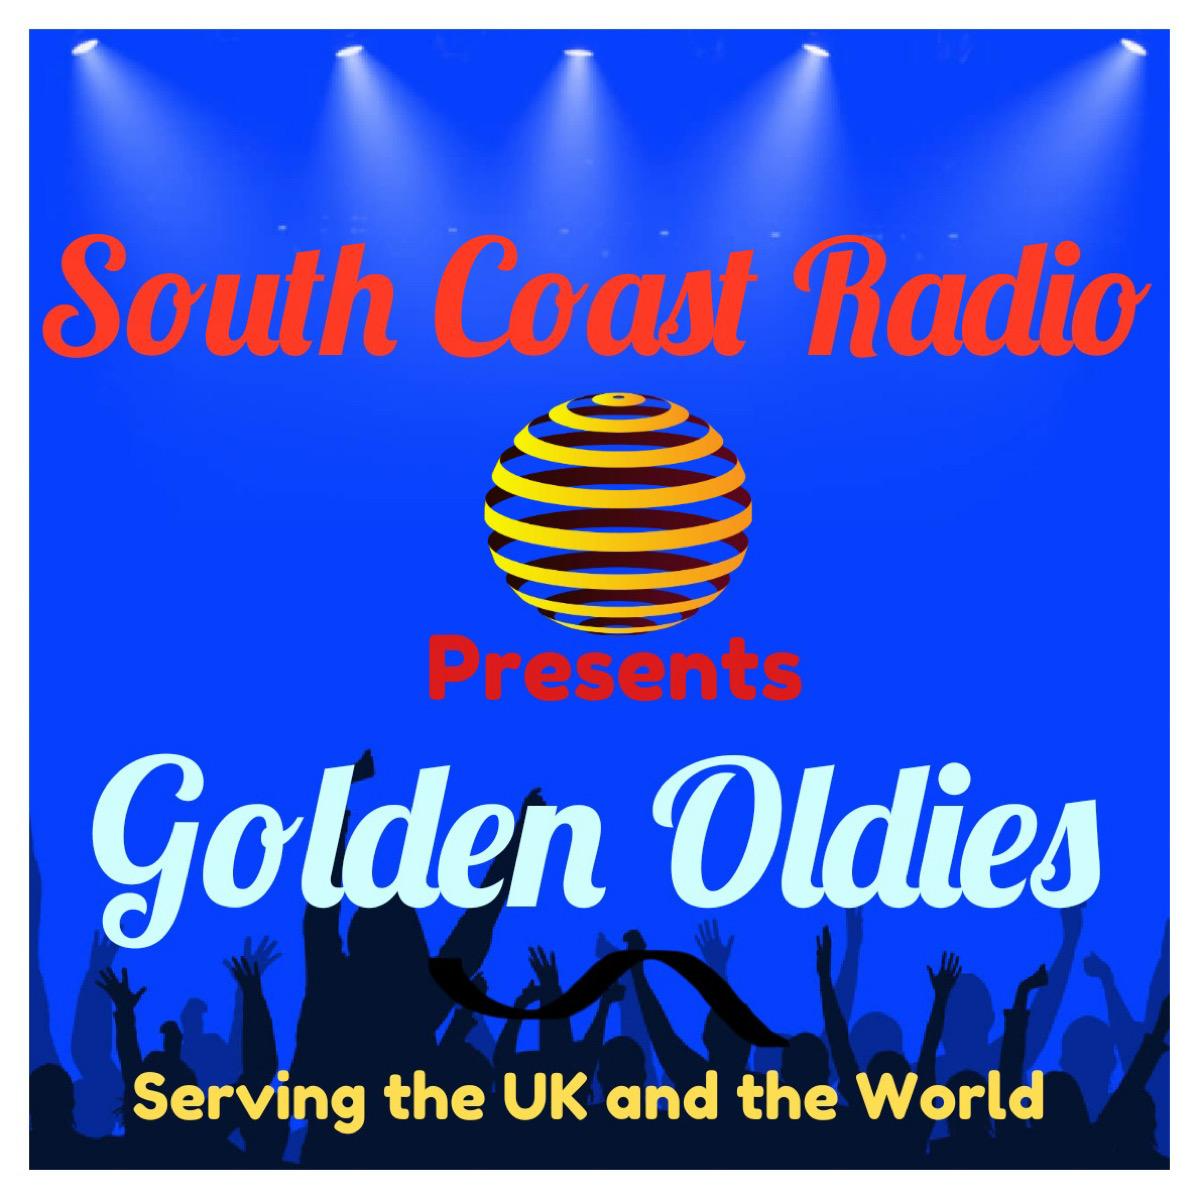 The Greatest Hits Of All Time-South Coast Radio Golden Oldies